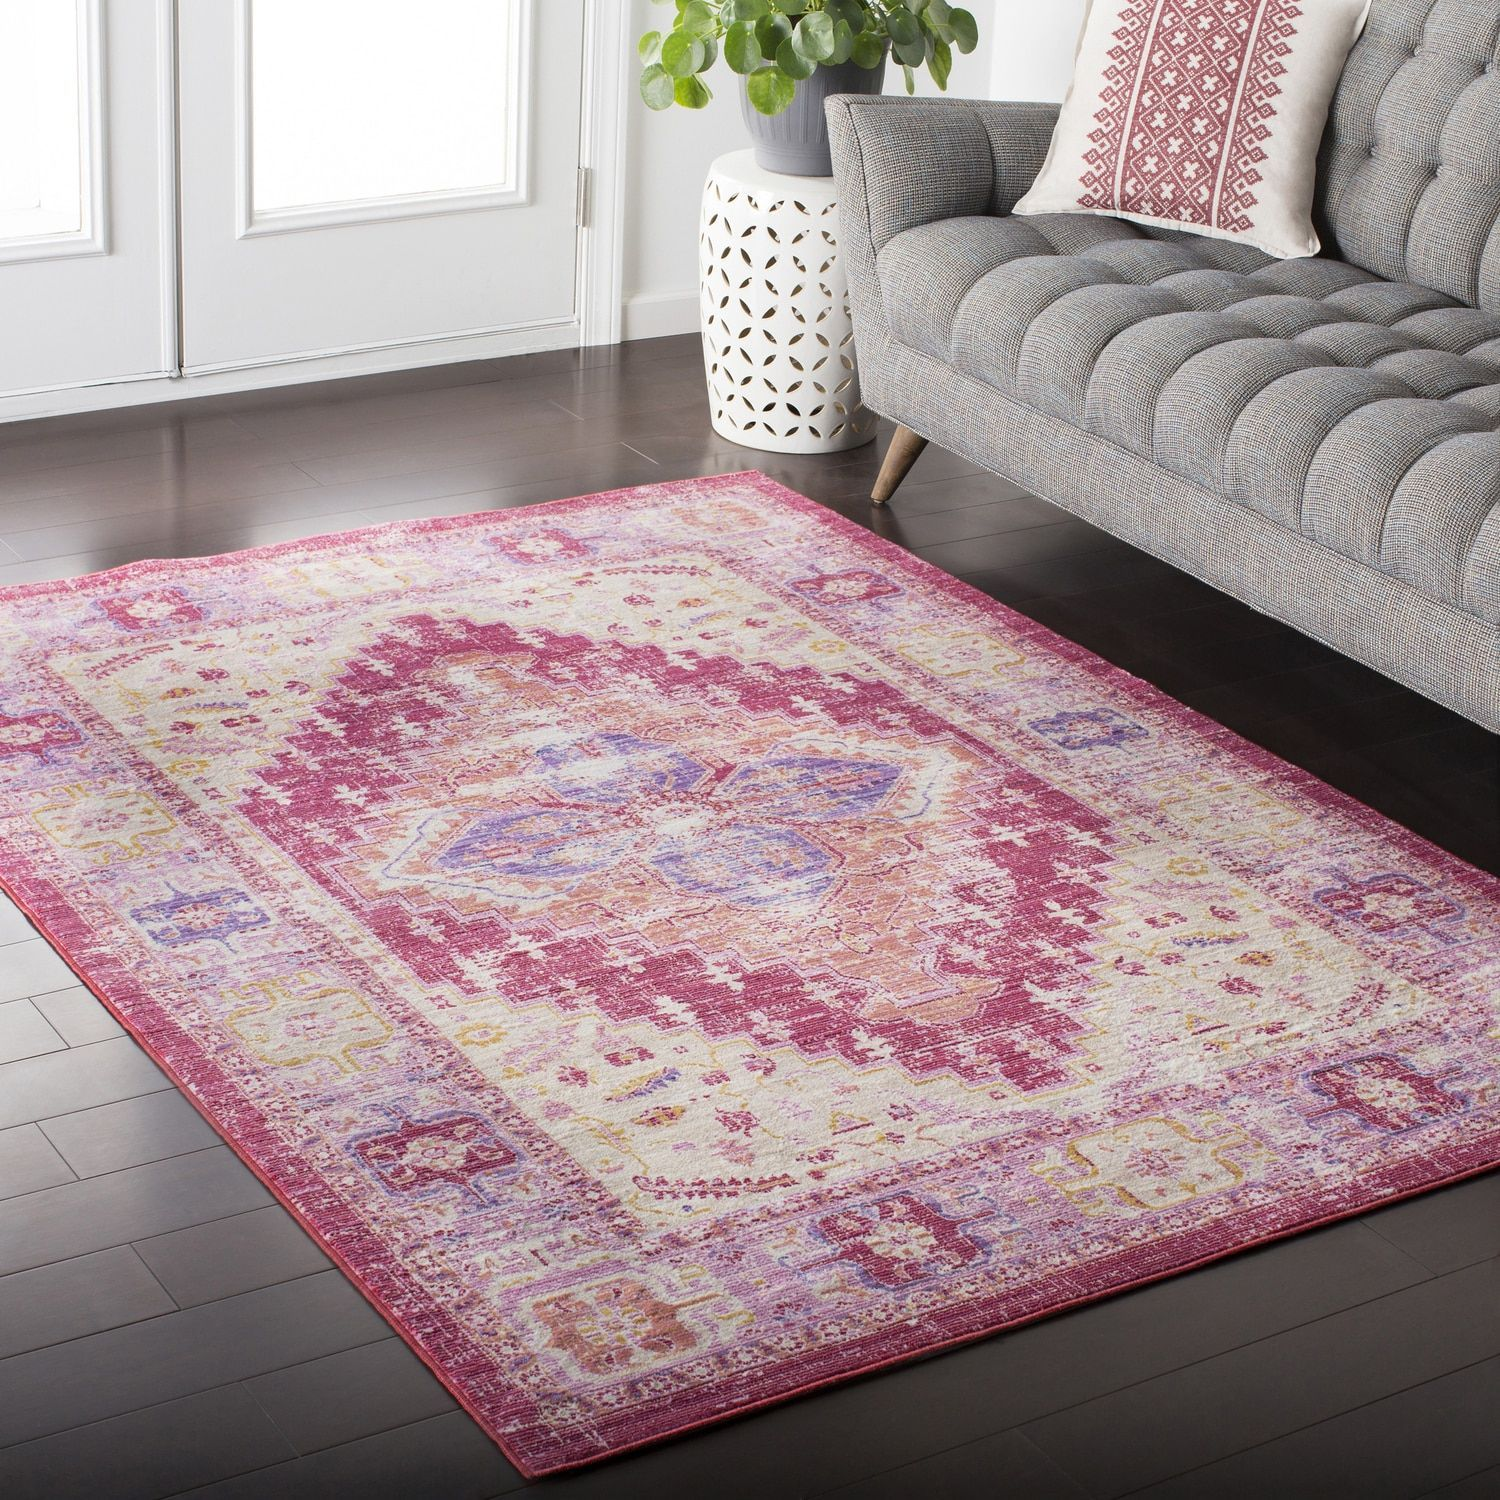 Overstock Com Online Shopping Bedding Furniture Electronics Jewelry Clothing More Pink Area Rug Art Of Knot Oriental Area Rugs